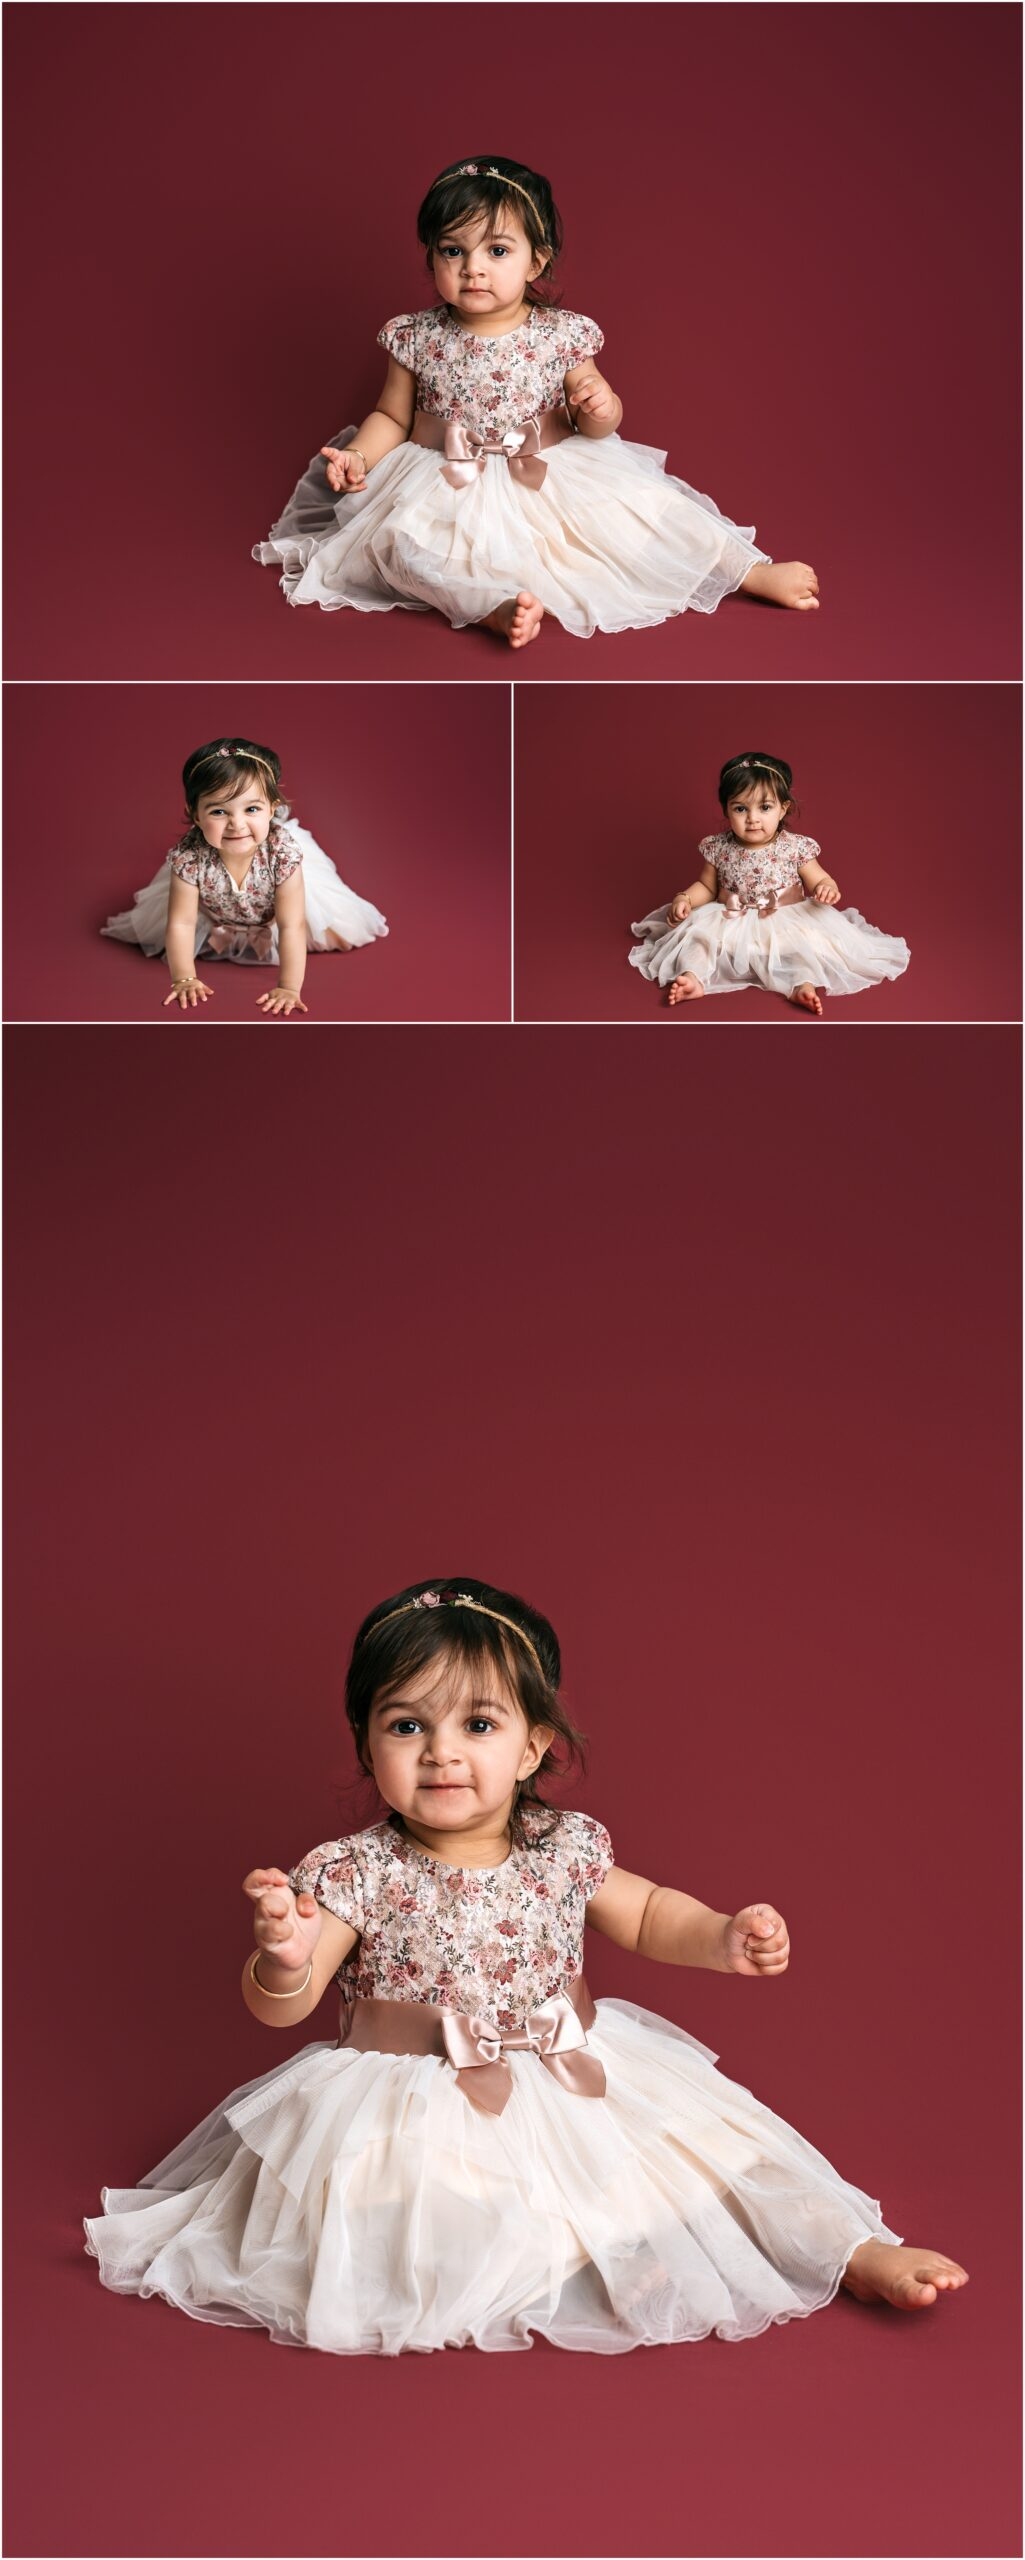 one year old girl on maroon backdrop